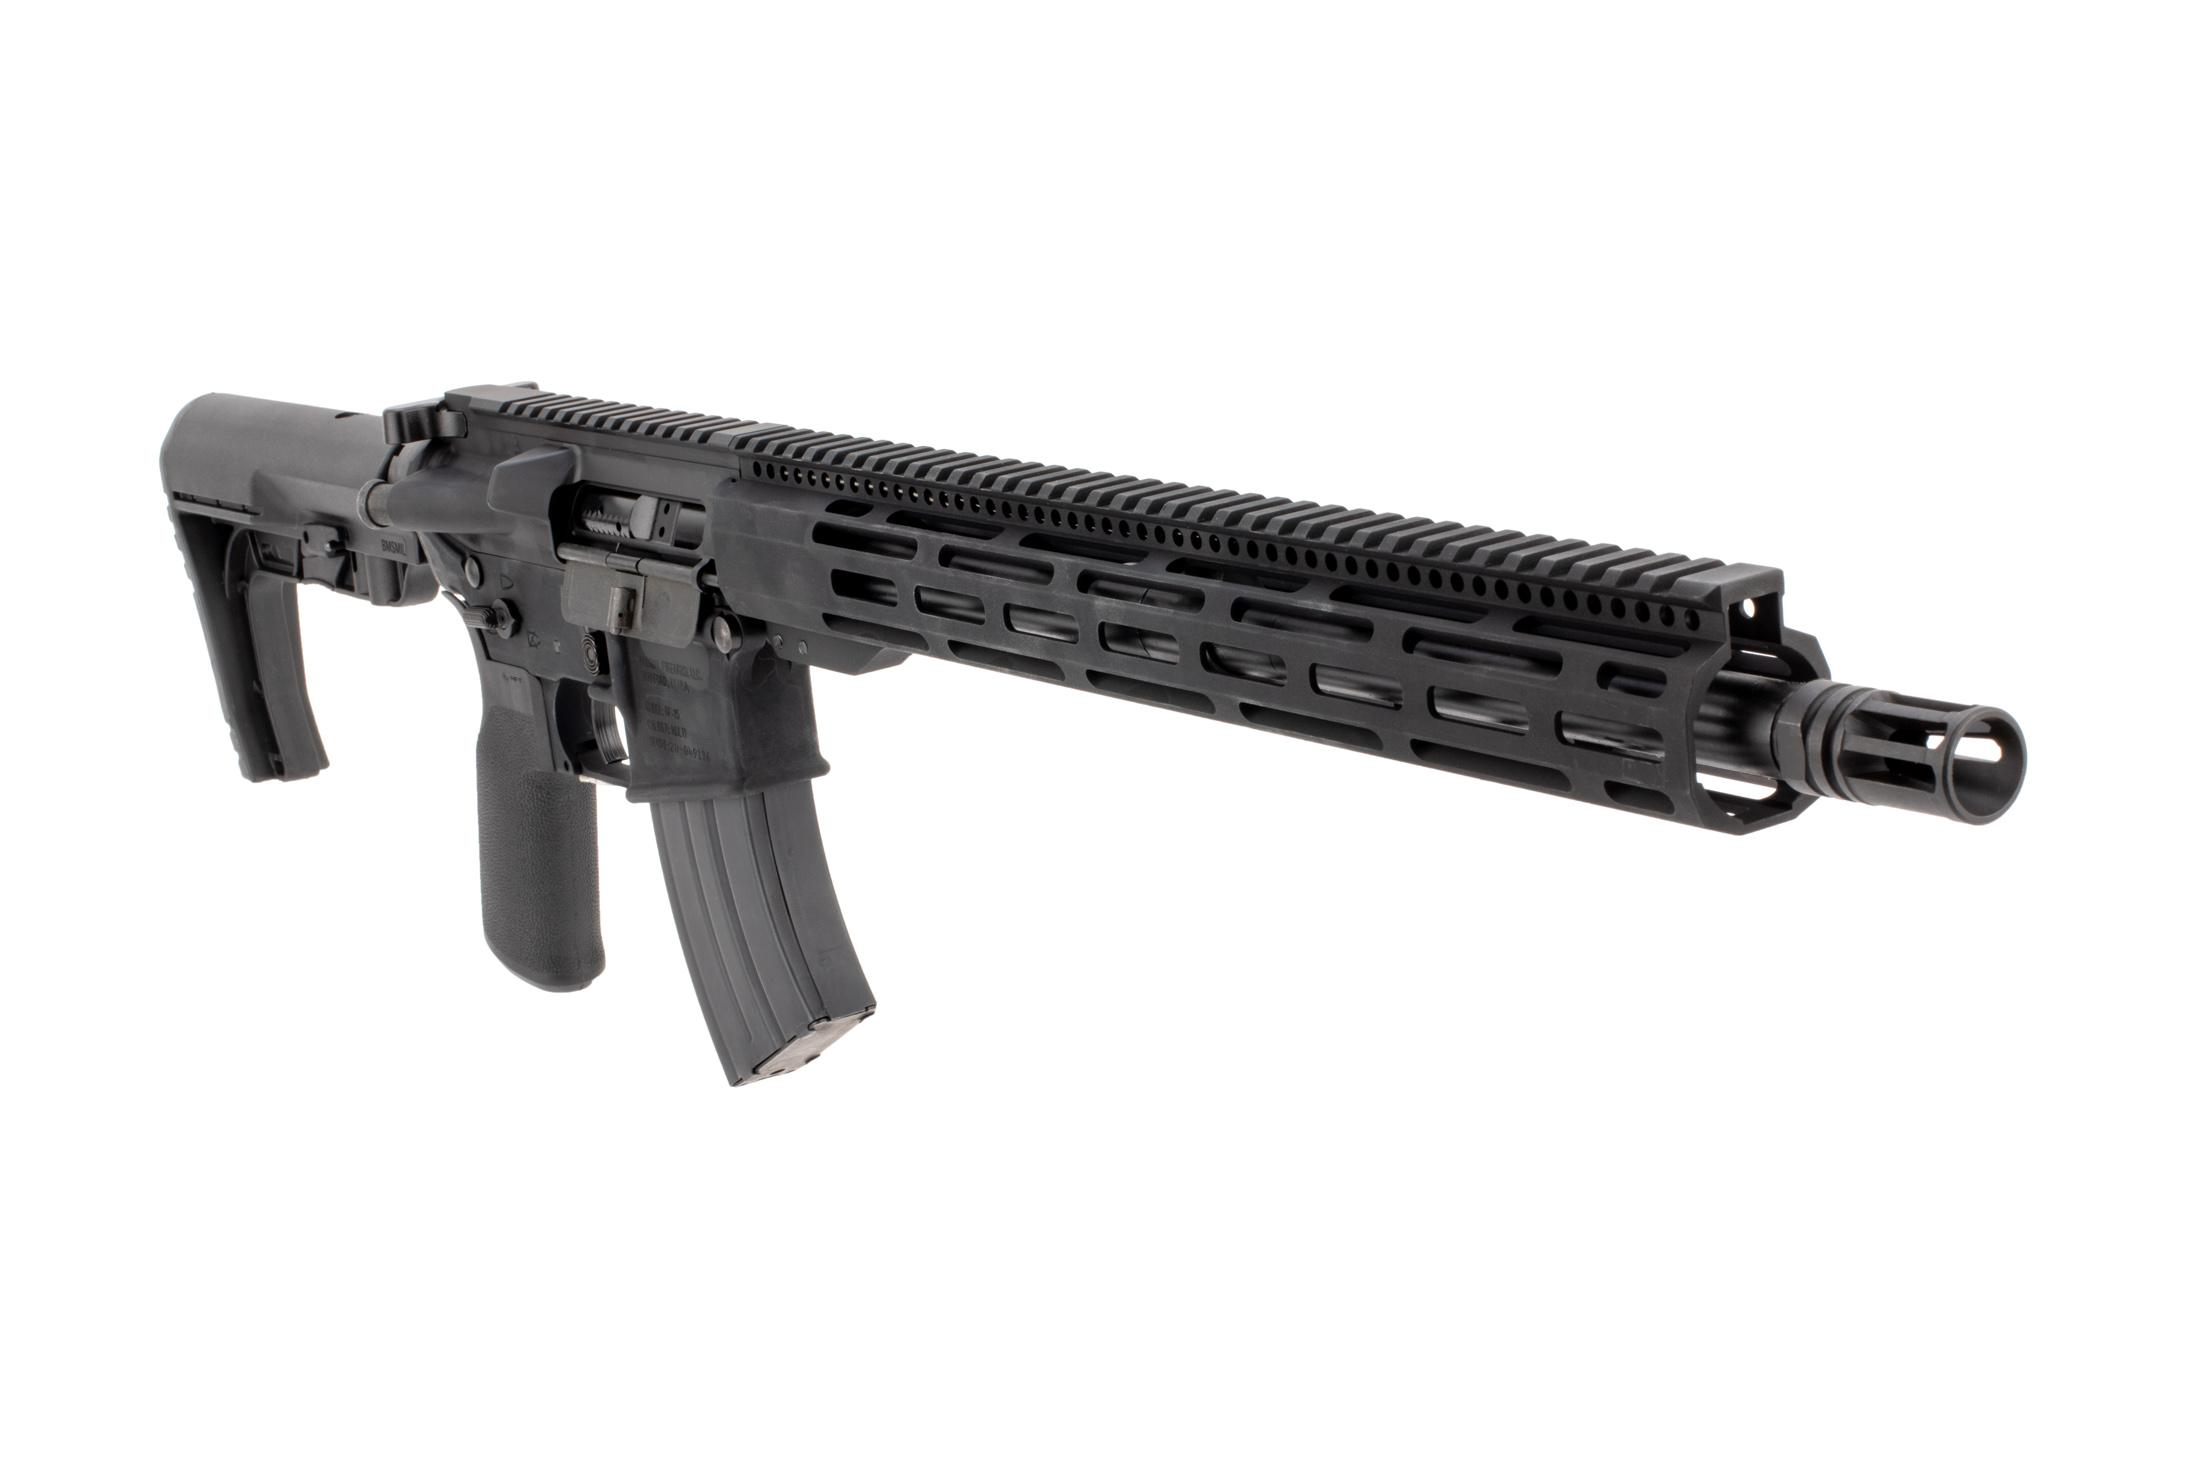 Radical Firearms 16in 7.62x39mm AR-15 features a lightweight M-LOK handguard and effective A2 flash hider